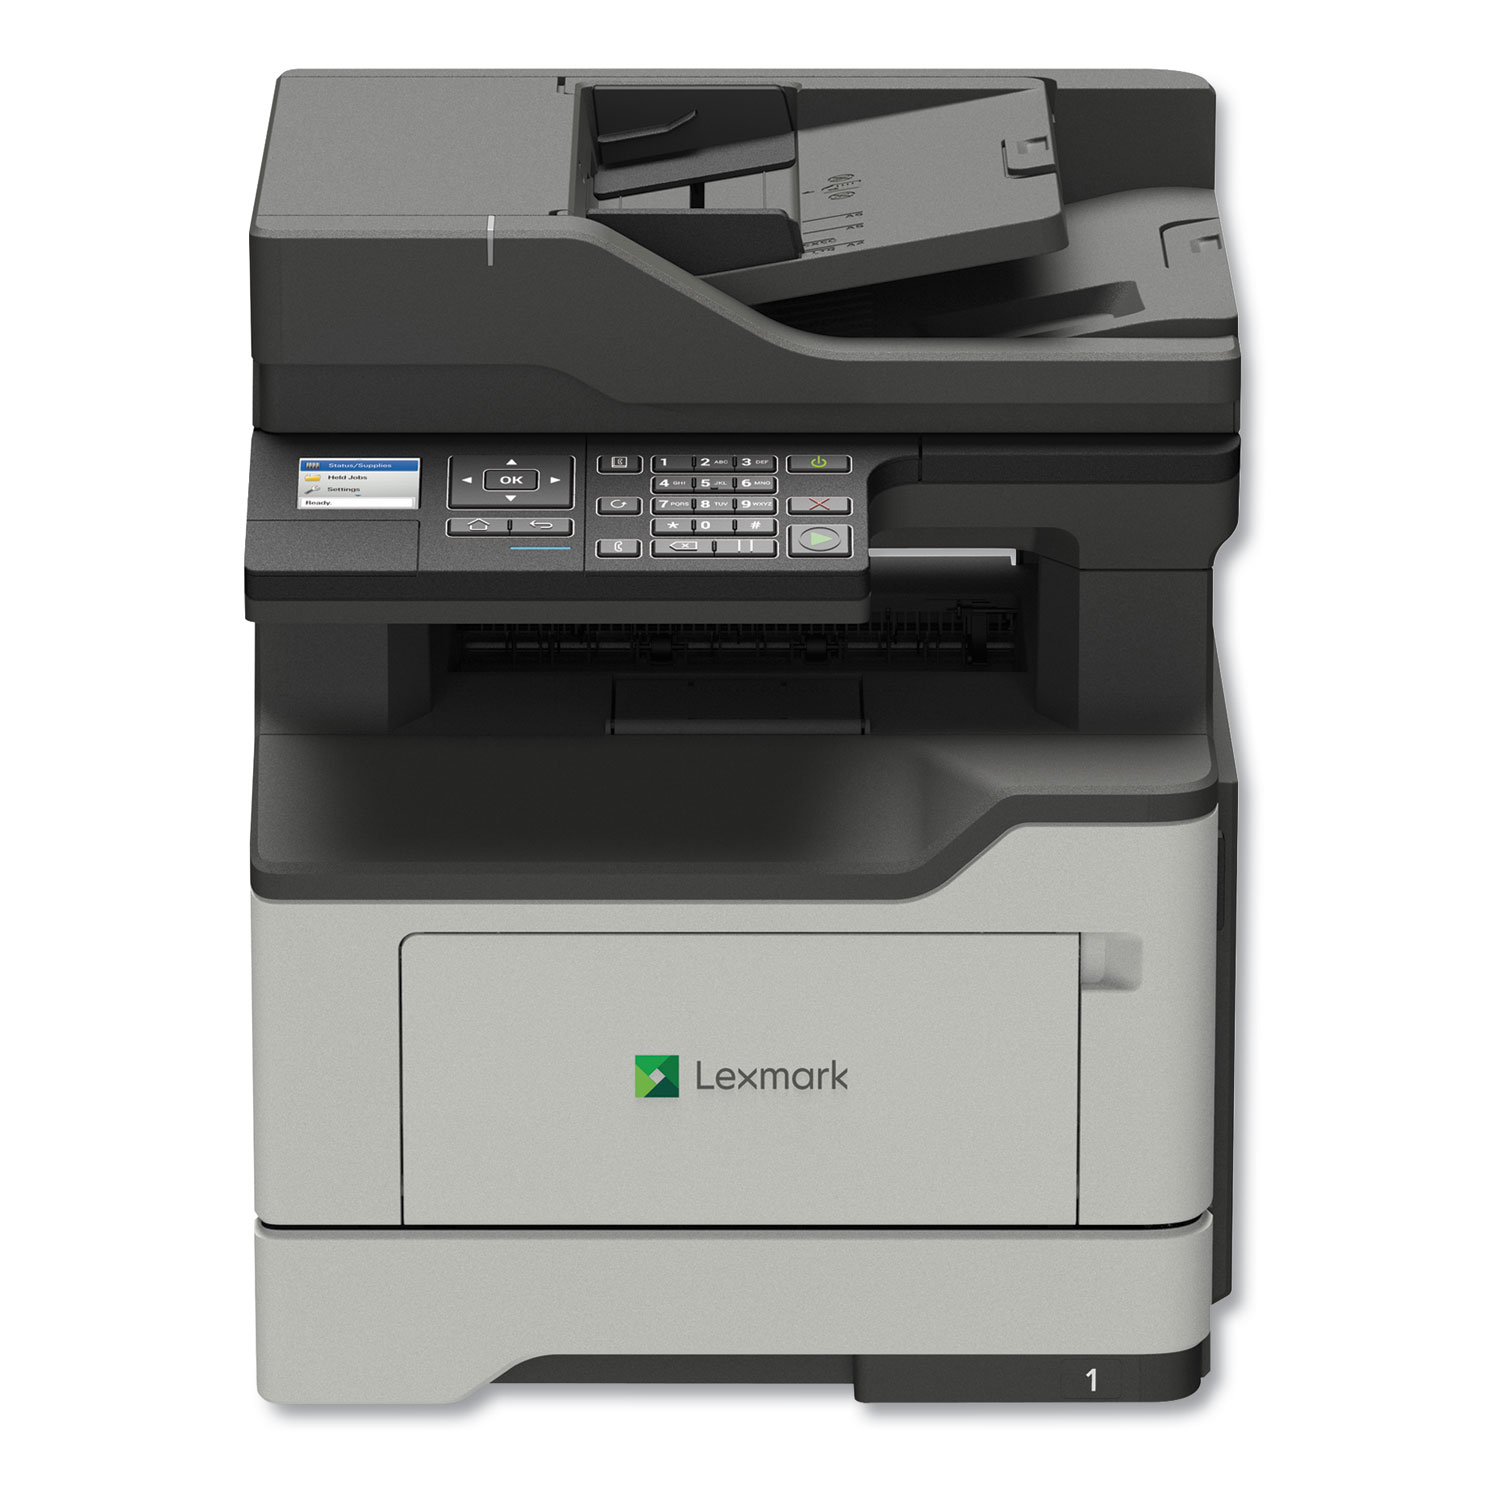 MX321adn Monochrome Laser Multifunction Printer, Copy/Fax/Print/Scan